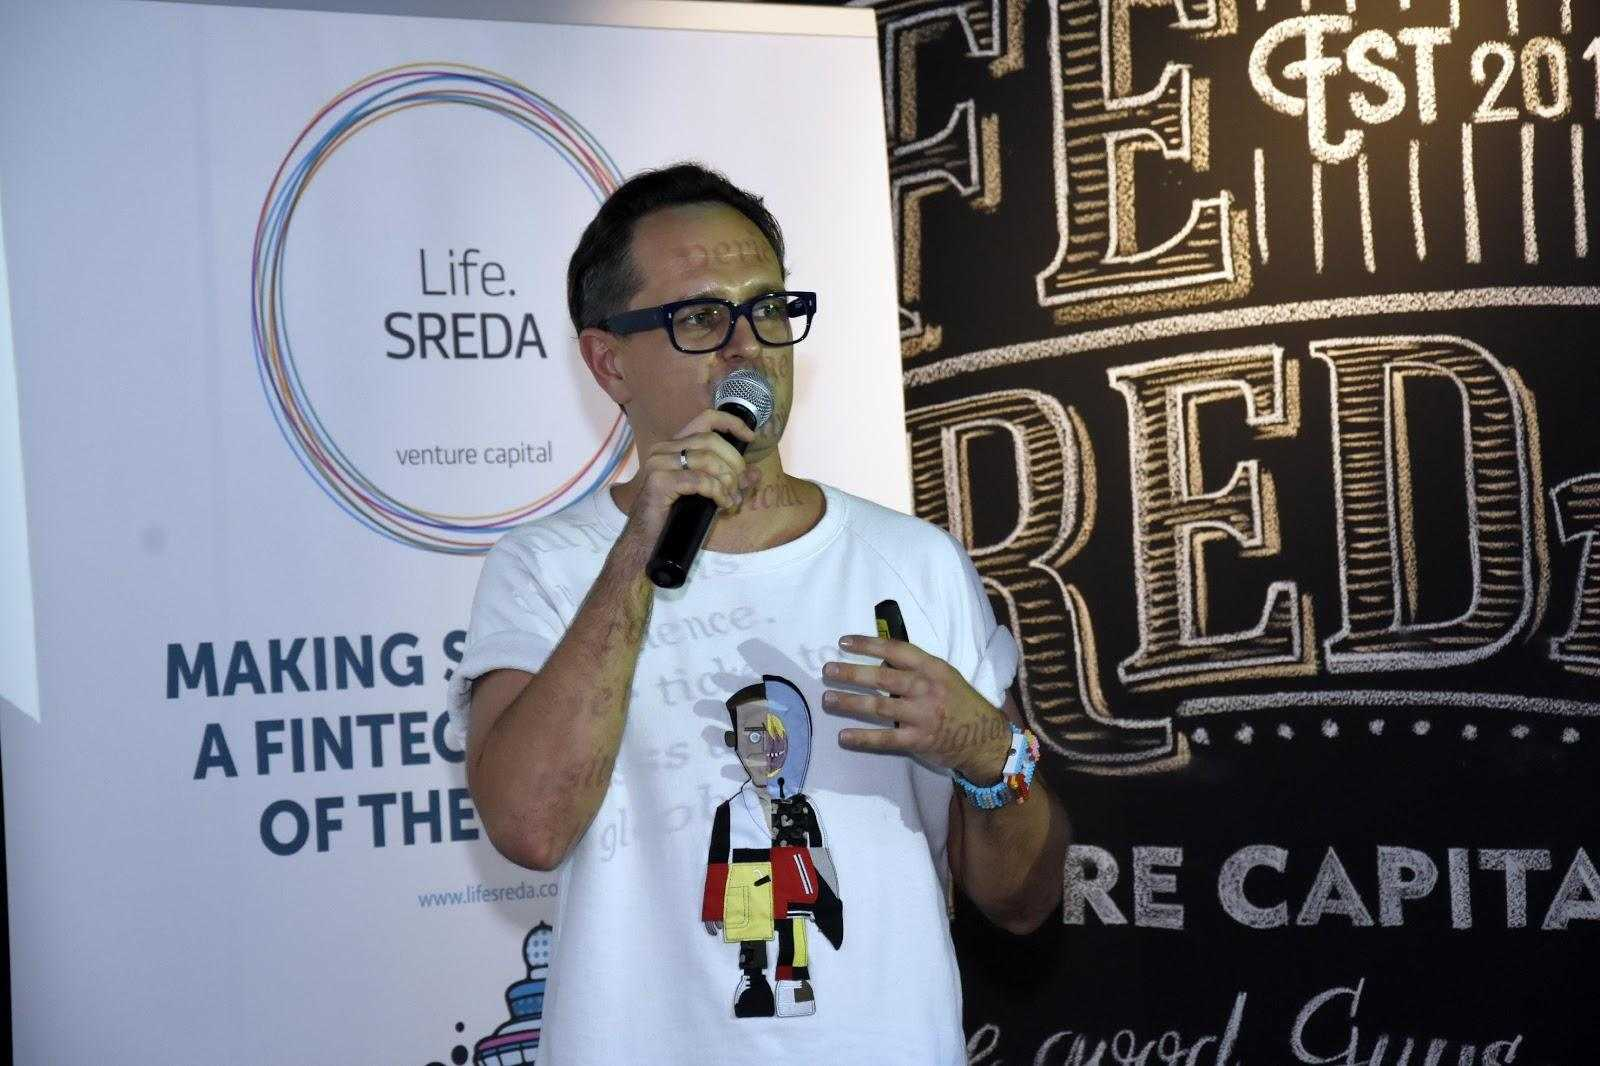 BAAS.IS, India FinTech, SE Asia Startups and FemTech Discussion at Life.SREDA Event Singapore